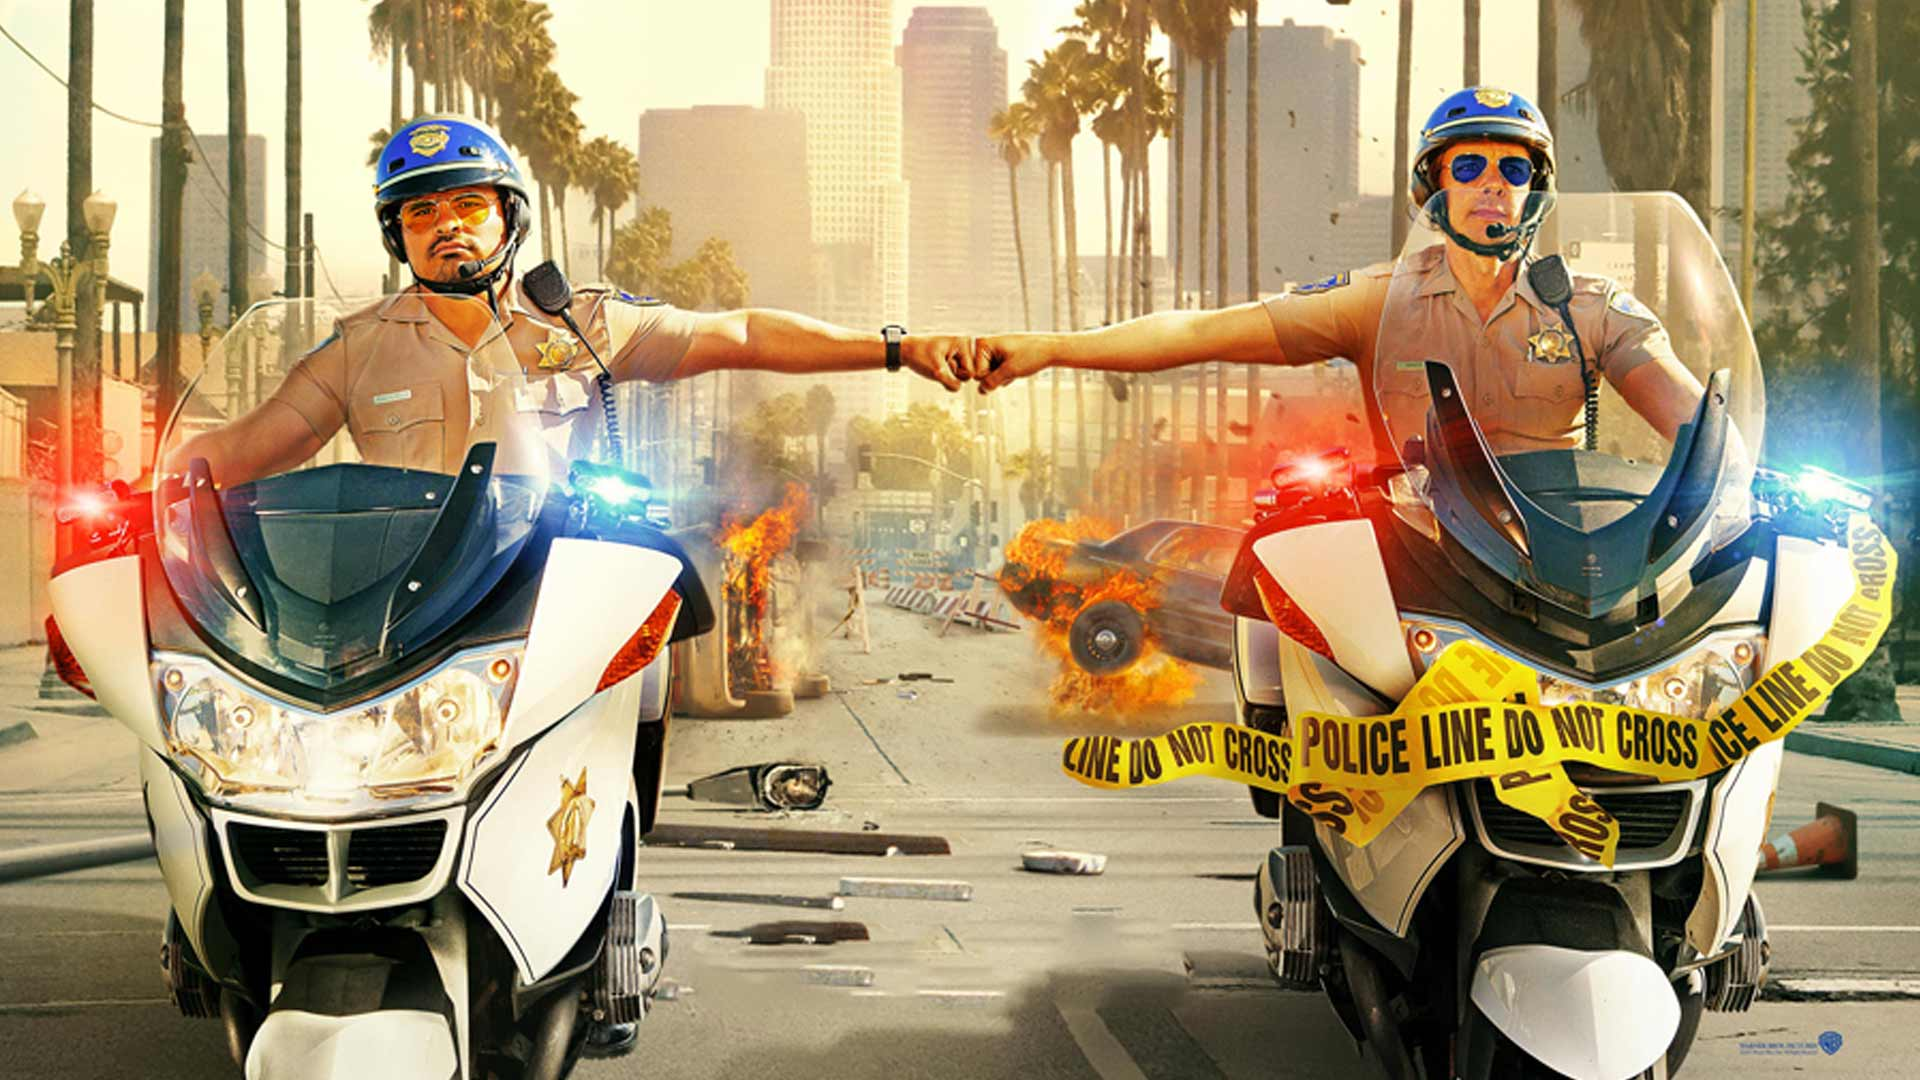 Chips: Patrulla Motorizada Full HD Dual Latino Ingles Subtitulado